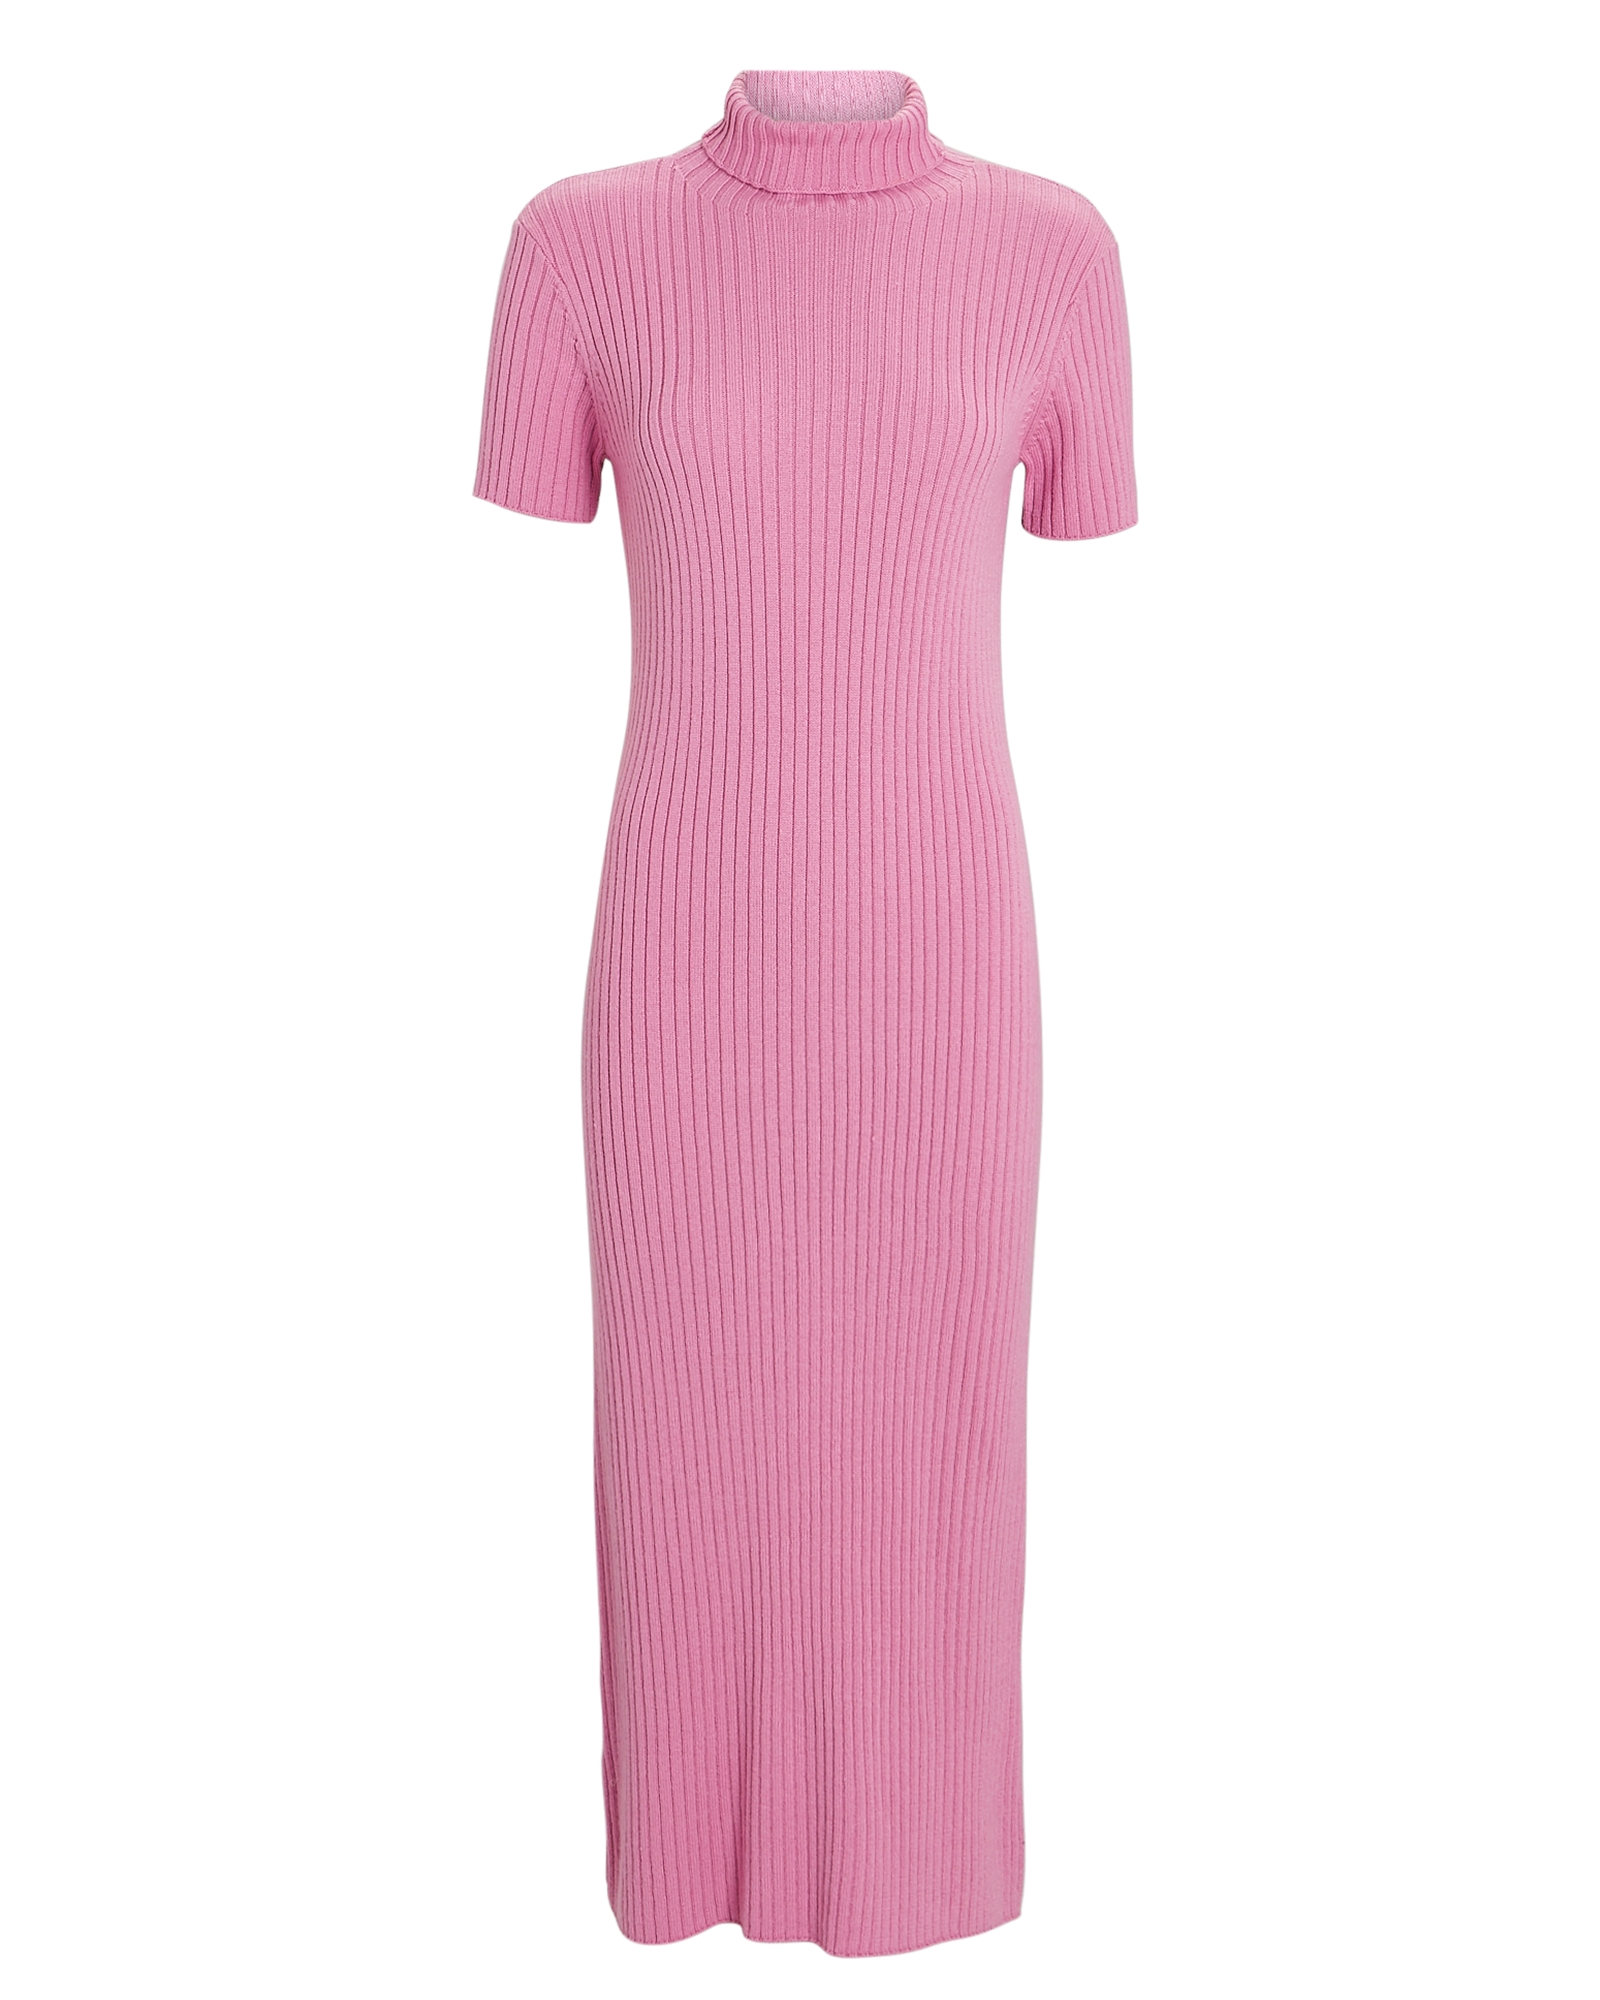 Staud LILOU TURTLENECK RIB KNIT DRESS